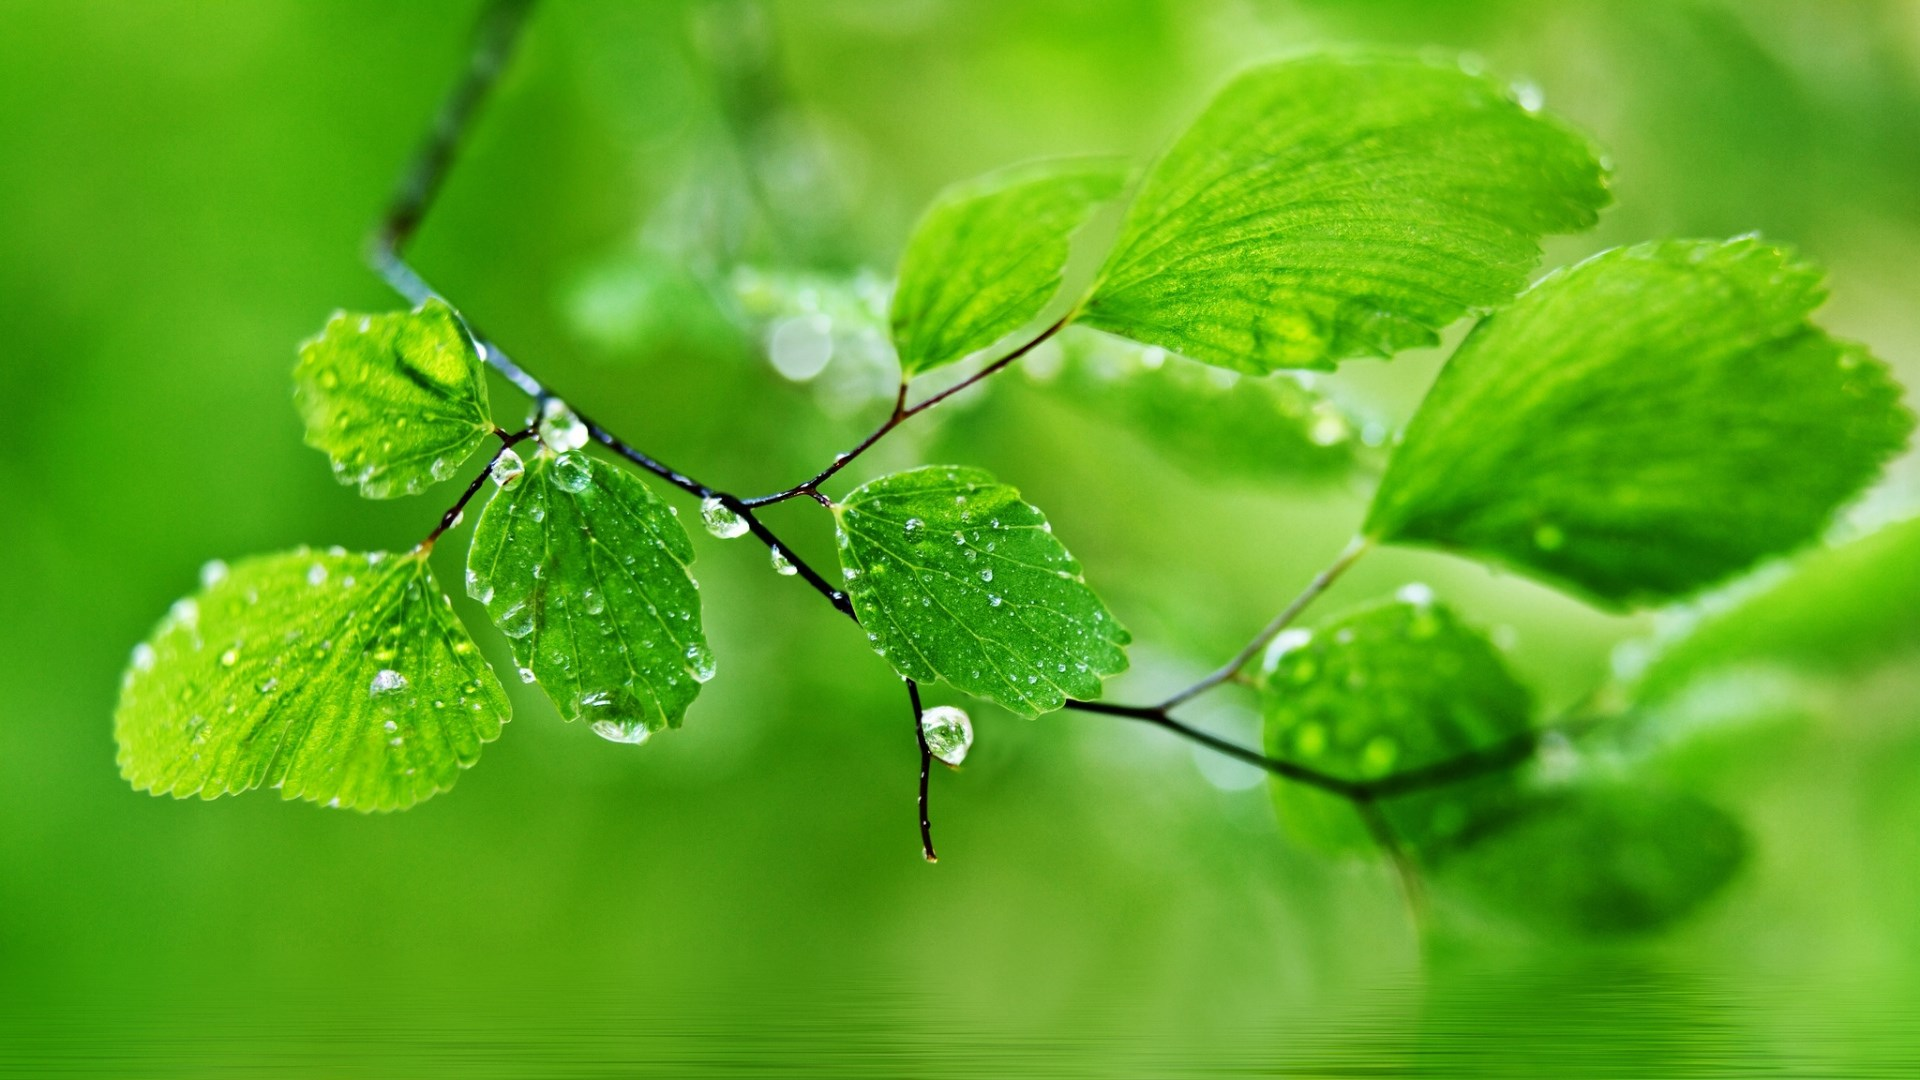 green-leaf-nature-rain-hd-pictures-wallpaper-wpc5805571